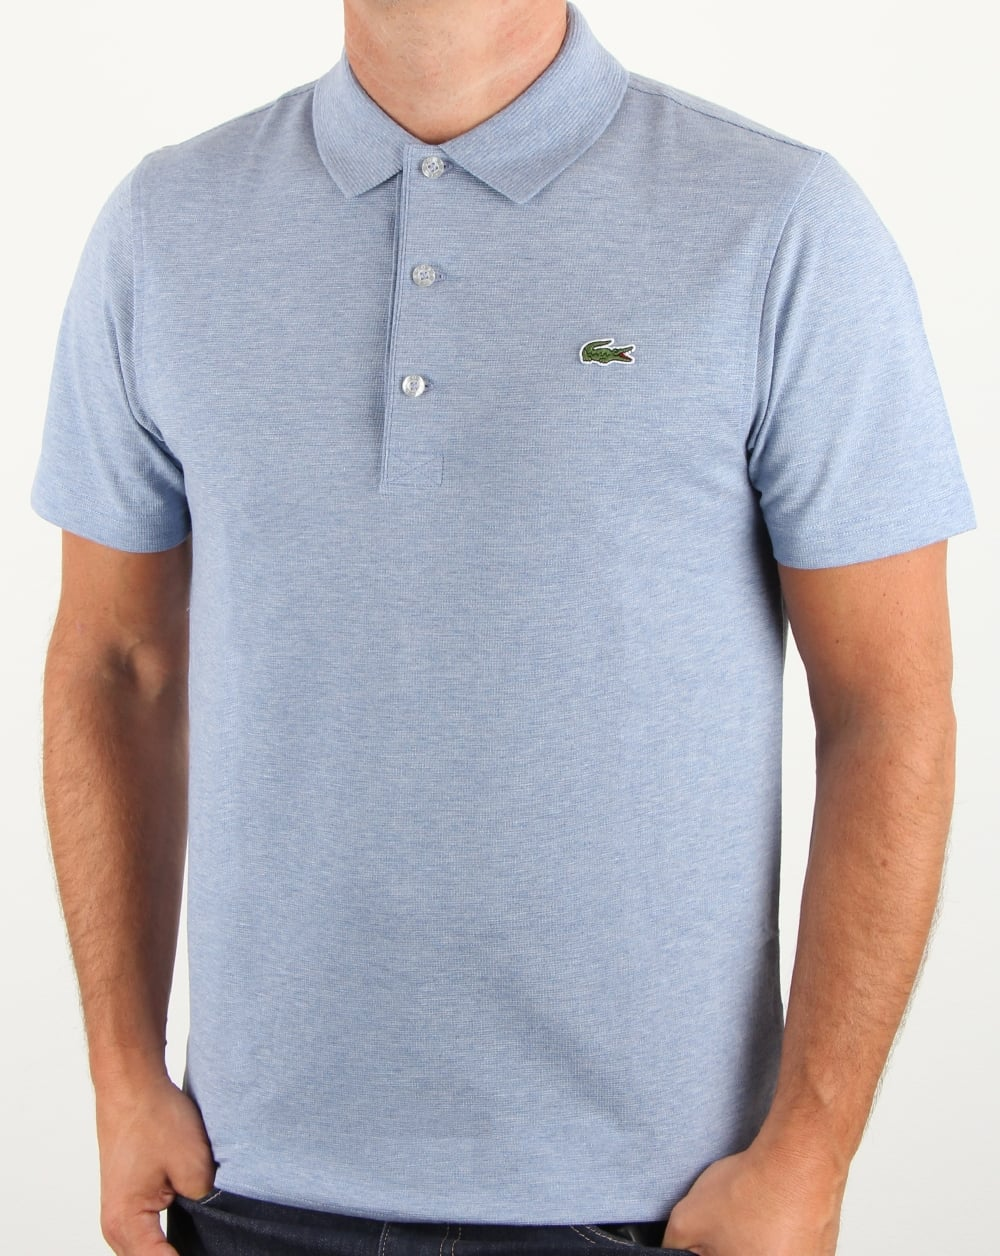 c89dc71d7 Lacoste Ultra-lightweight Knit Polo Shirt Valerian Chine